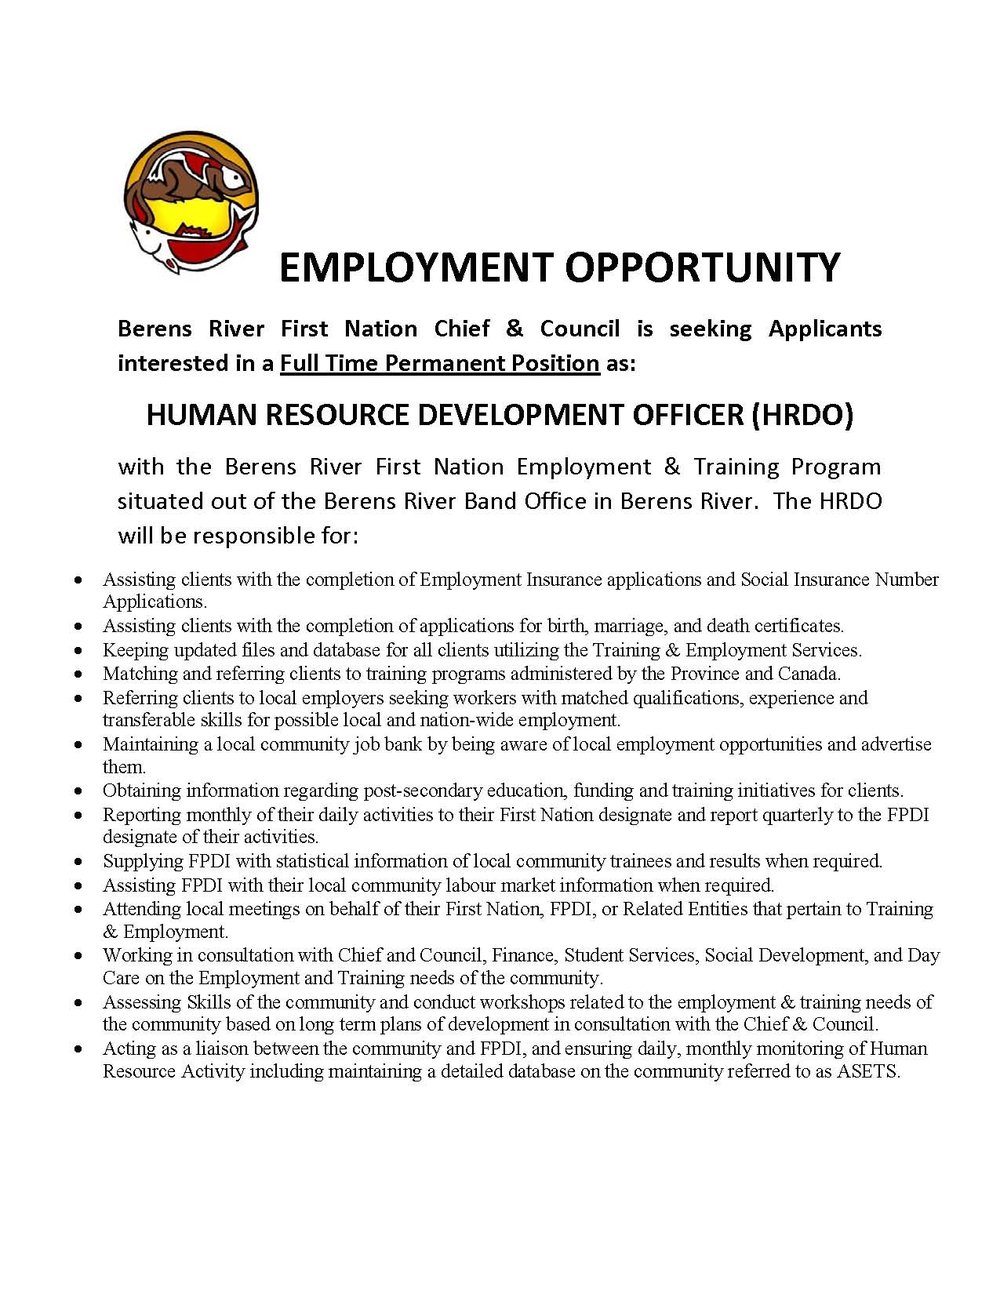 EMPLOYMENT OPPORTUNITY - HRDO_Page_1.jpg